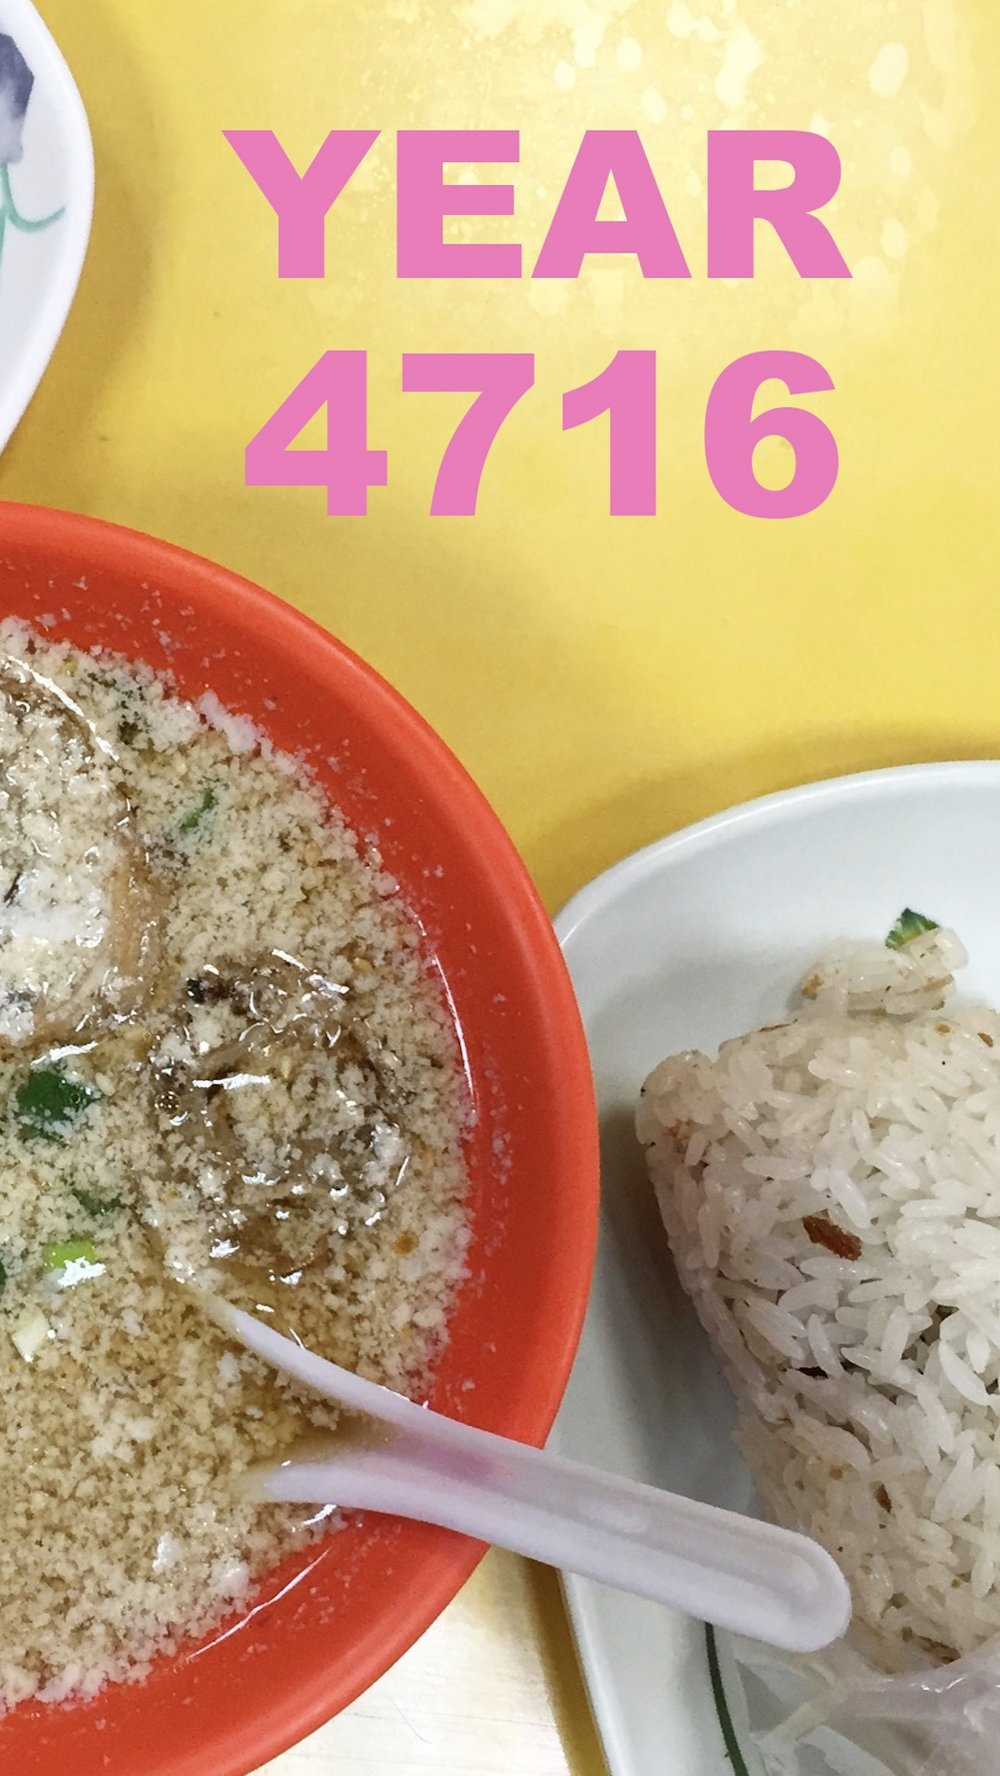 """Breakfast in Taipei in year 4716"" by Howie Chen  5th Day"